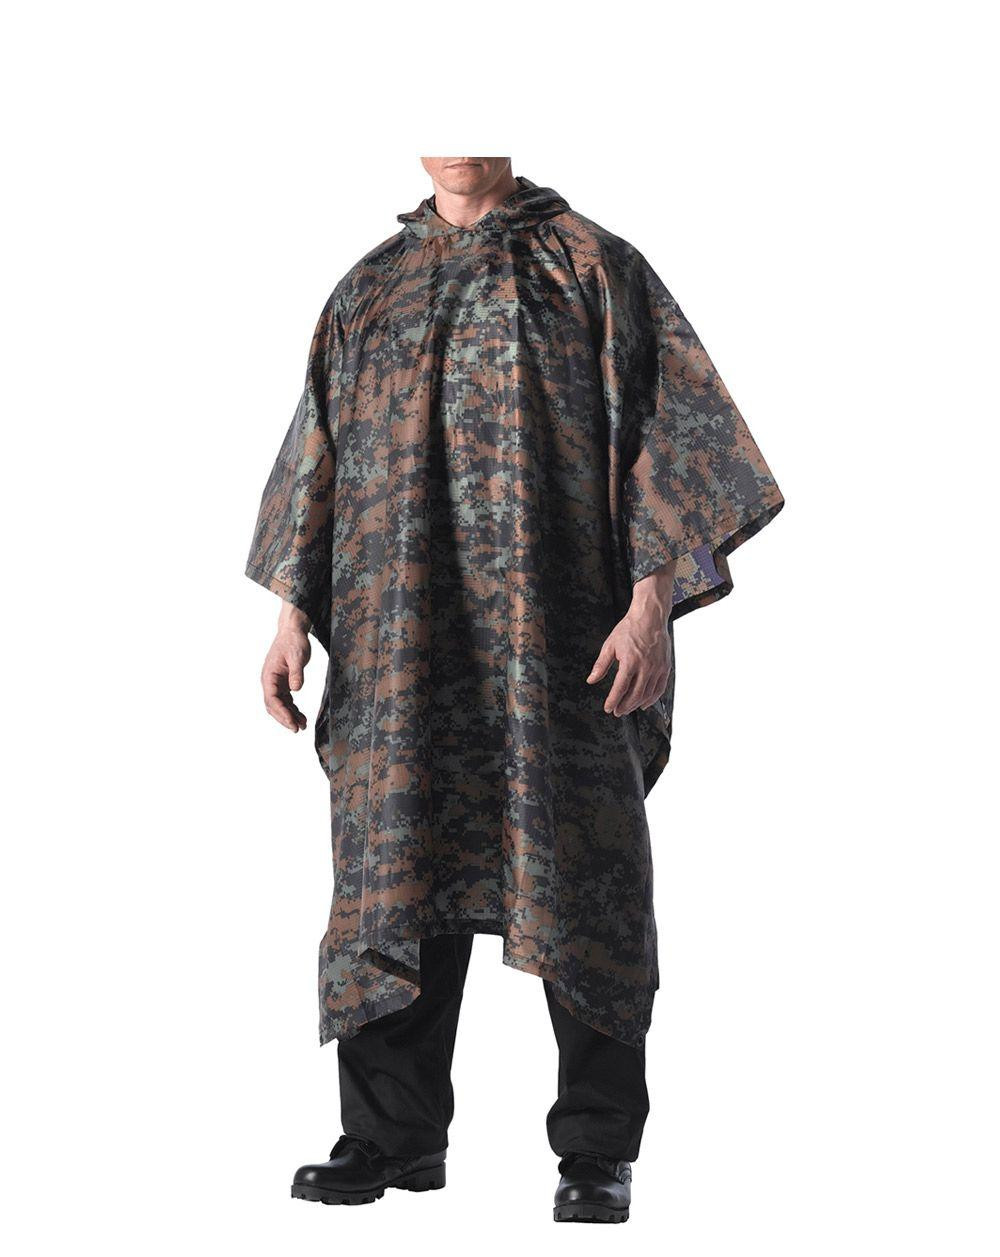 Rothco Military Poncho - Rip-stop (Digital Woodland, One Size)